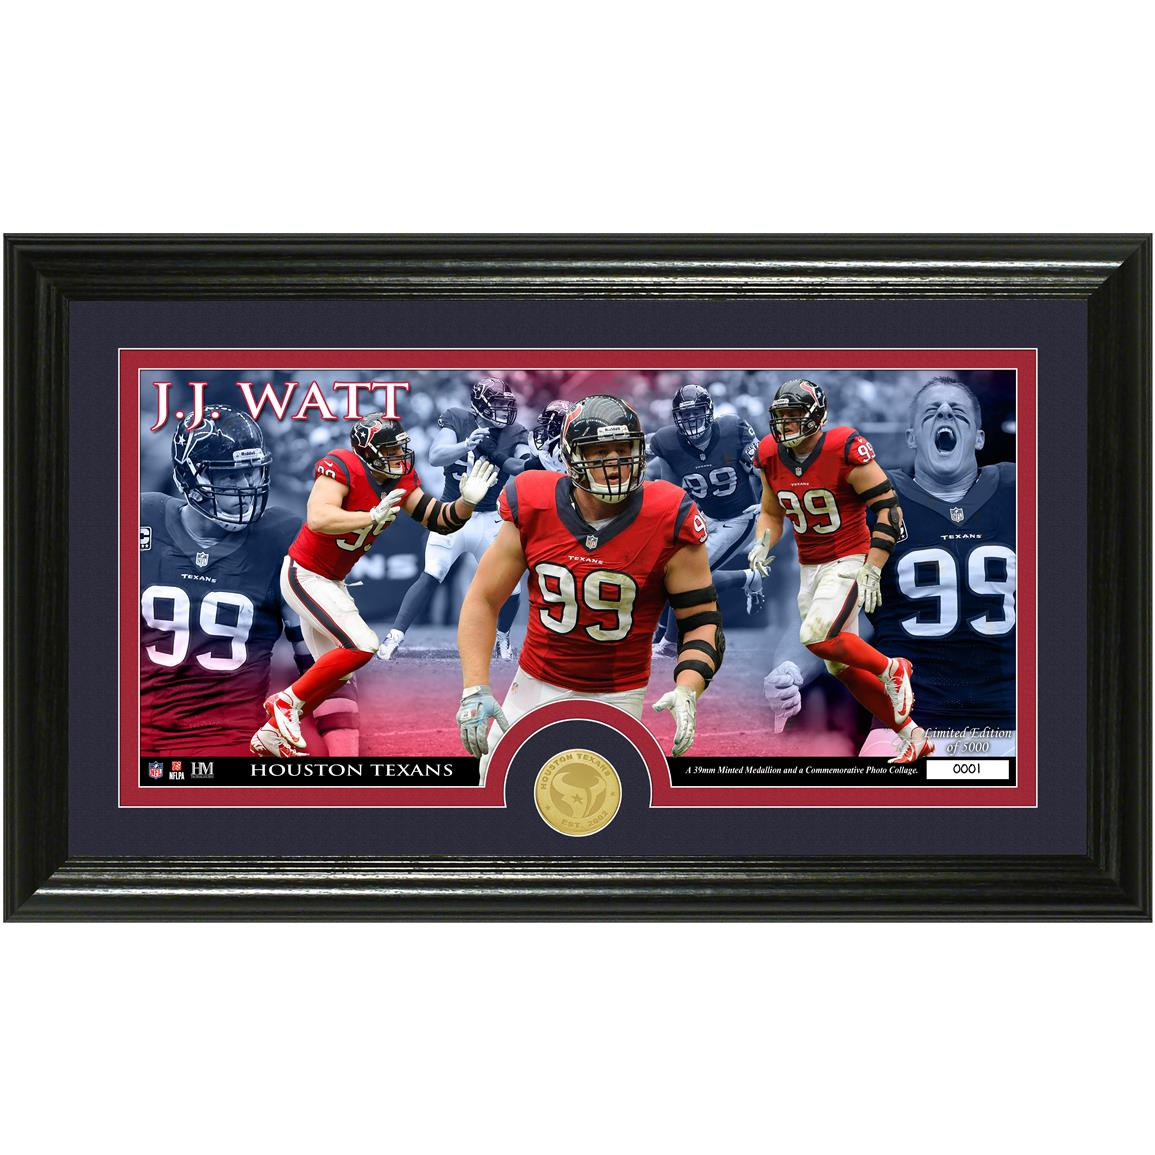 JJ Watt Bronze Coin Panoramic Photo Mint from The Highland Mint